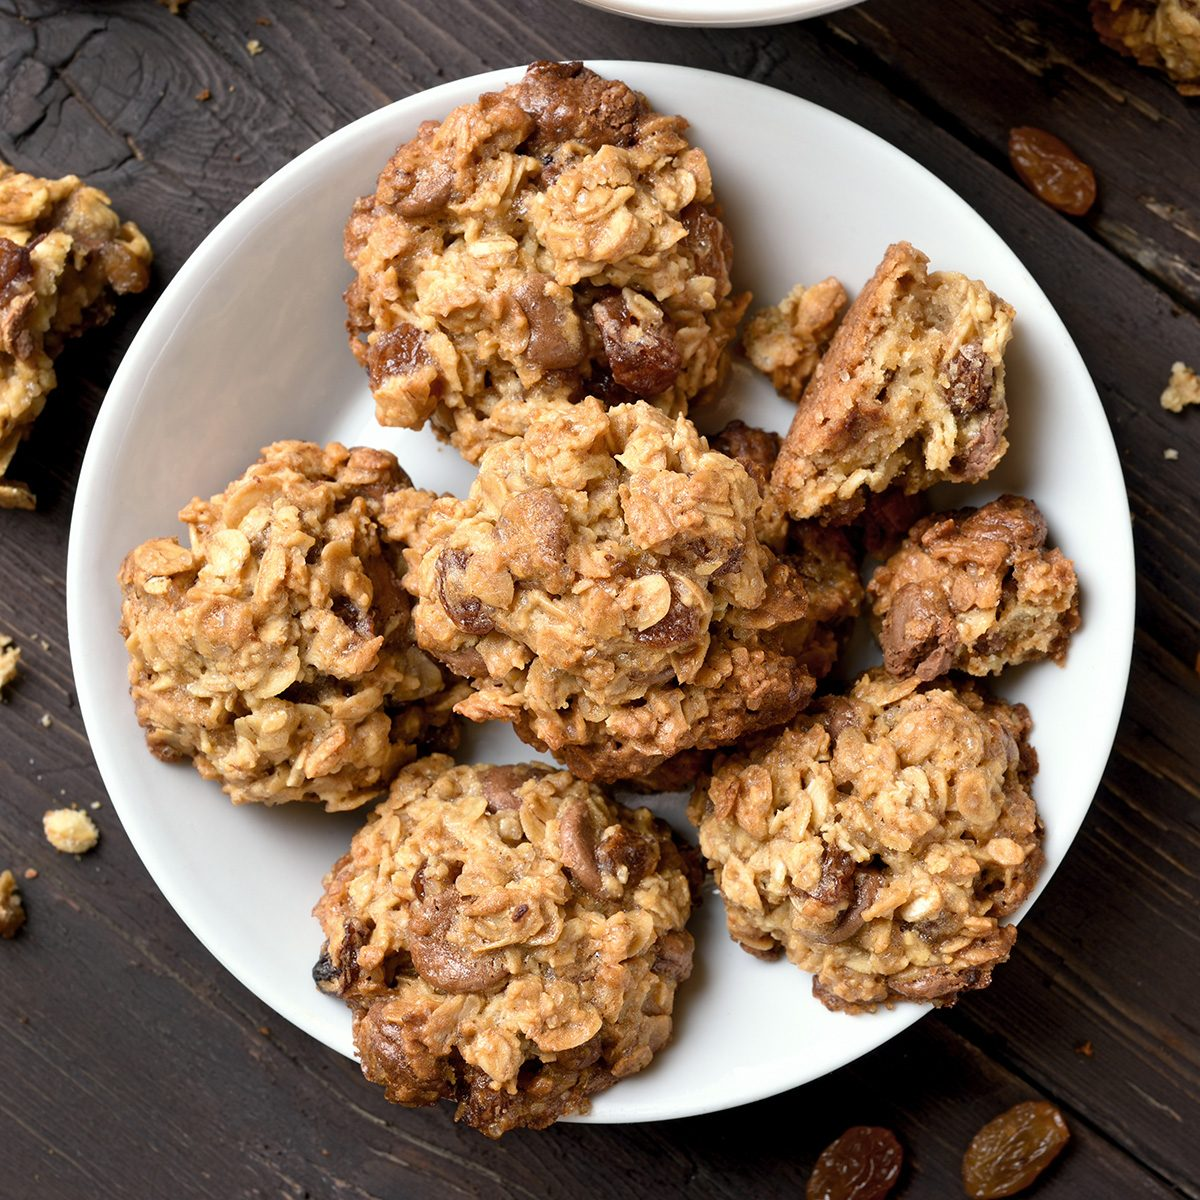 Healthy oatmeal cookies on plate over wooden background, top view; Shutterstock ID 740216929; Job (TFH, TOH, RD, BNB, CWM, CM): TOH